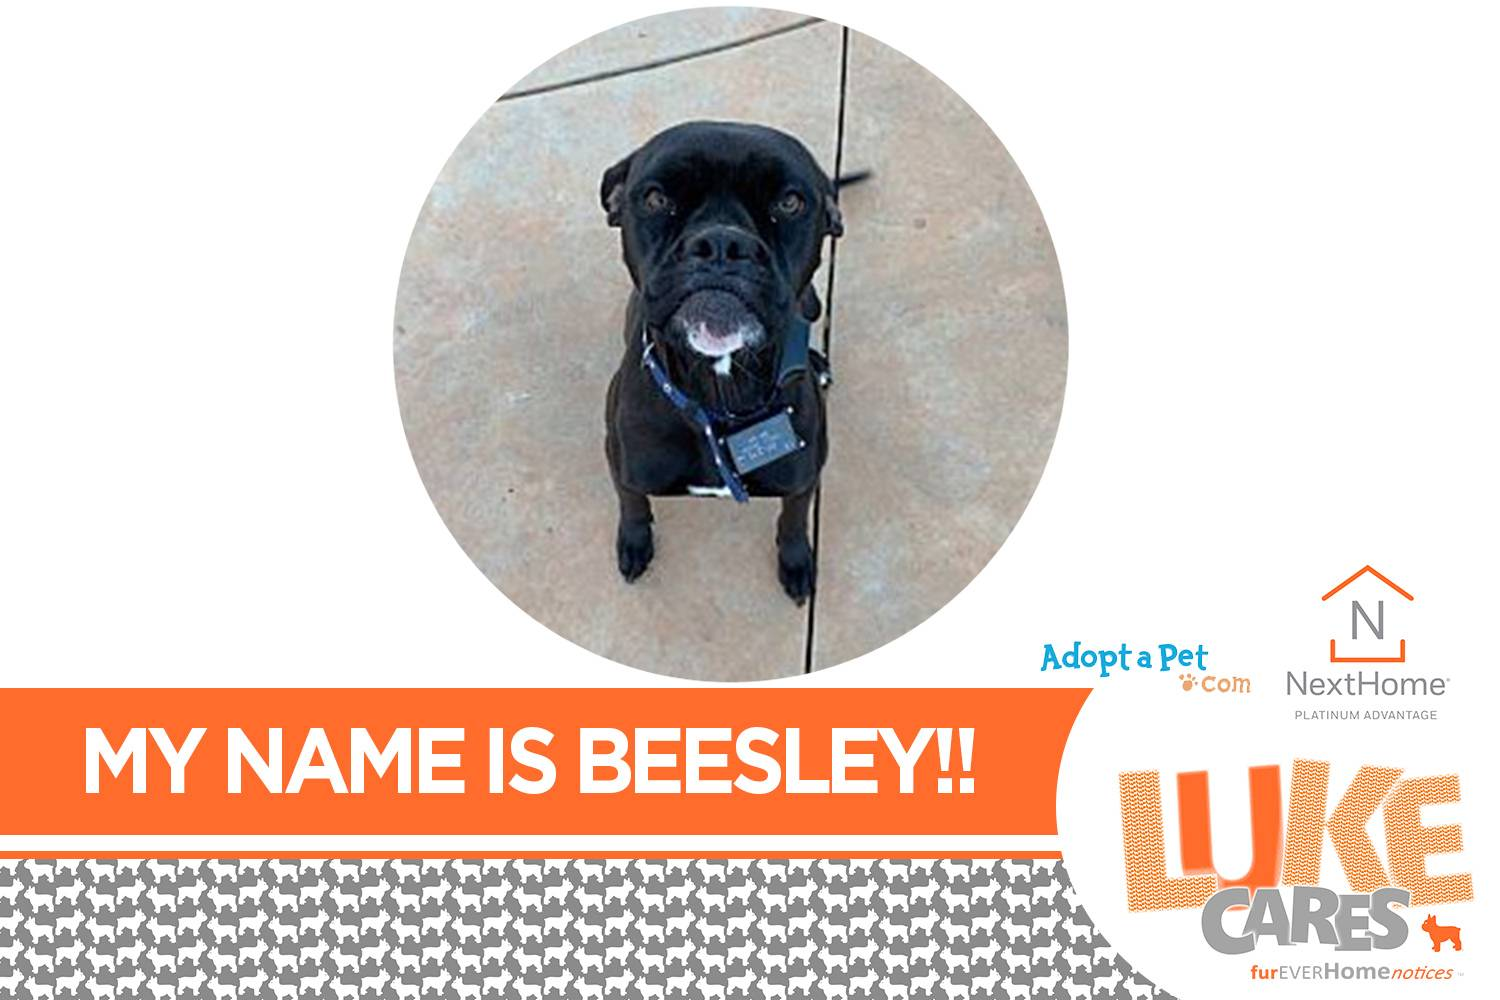 My Name is Beesley.  pet rescue, animal rescue, pets for adoption, dogs for adoption, pet rescue near me, animal rescue near me, pets for adoption near me, dogs for adoption near me, pet rescue rock hill sc, animal rescue rock hill sc, pets for adoption rock hill sc, dogs for adoption rock hill sc, pet rescue charlotte nc, animal rescue charlotte nc, pets for adoption charlotte nc, dogs for adoption charlotte nc, pet rescue fort mill sc, animal rescue fort mill sc, pets for adoption fort mill sc, dogs for adoption fort mill sc, pet rescue in north Carolina, pet rescue in South Carolina, pets for adoption in North Carolina, pets for adoption in South Carolina, dogs for adoption in North Carolina, dogs for adoption in South Carolina, cats for adoption, rescue cats